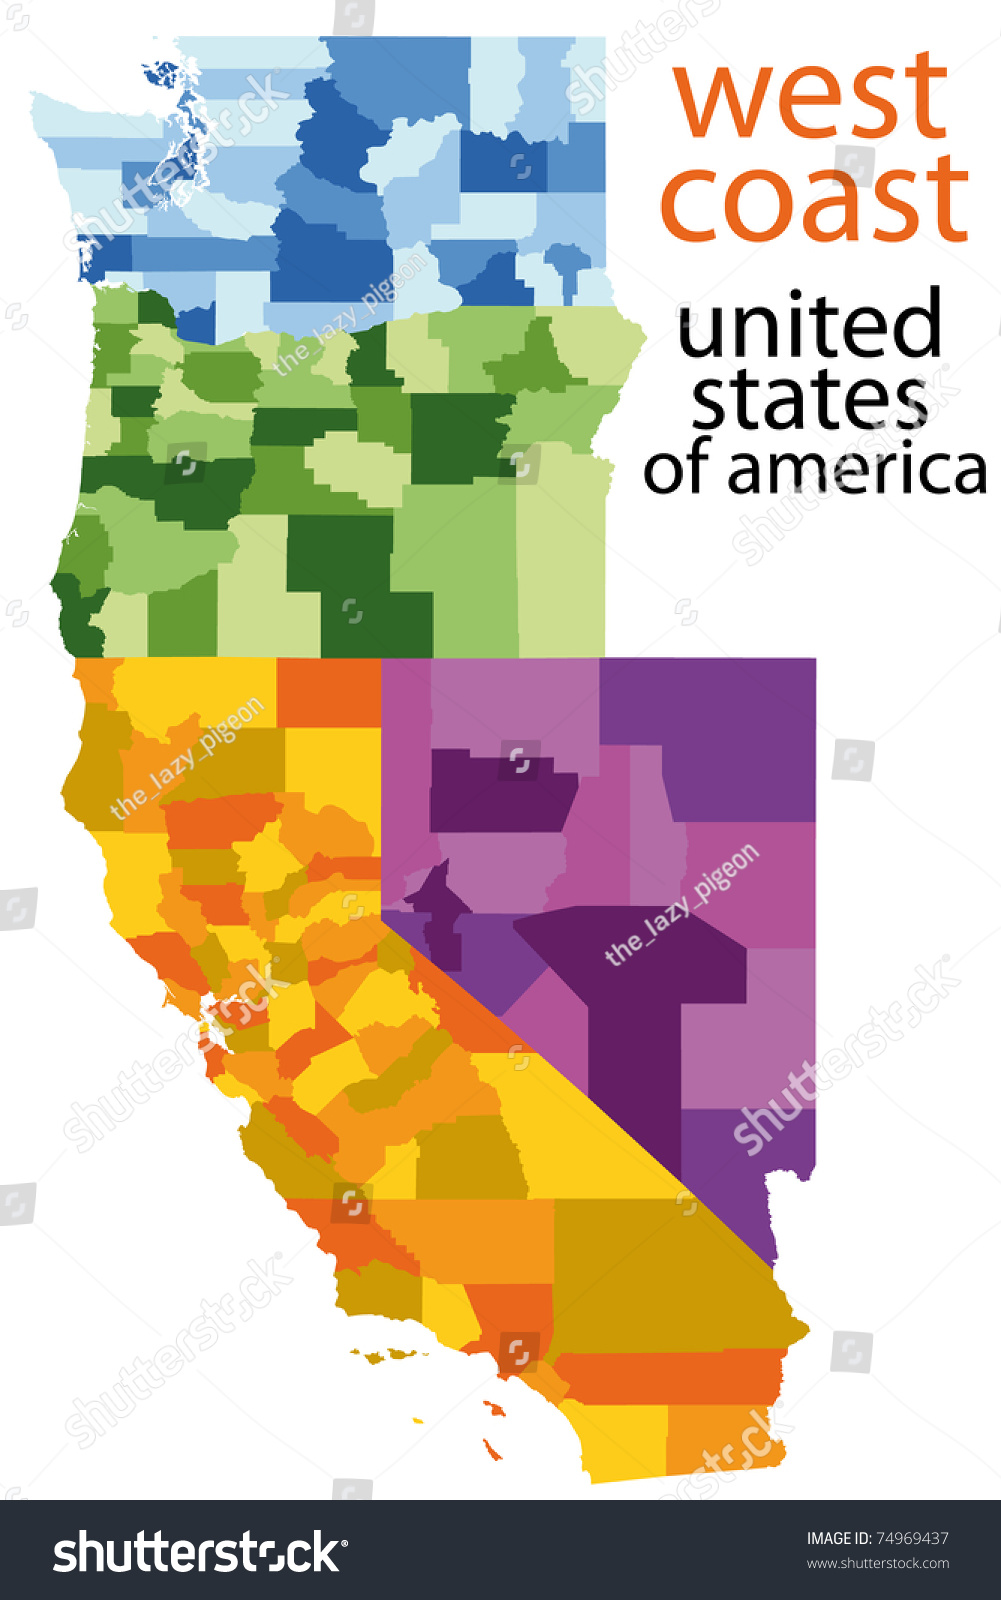 Detailed Map West Coast Usa Stockillustration 74969437 – Shutterstock